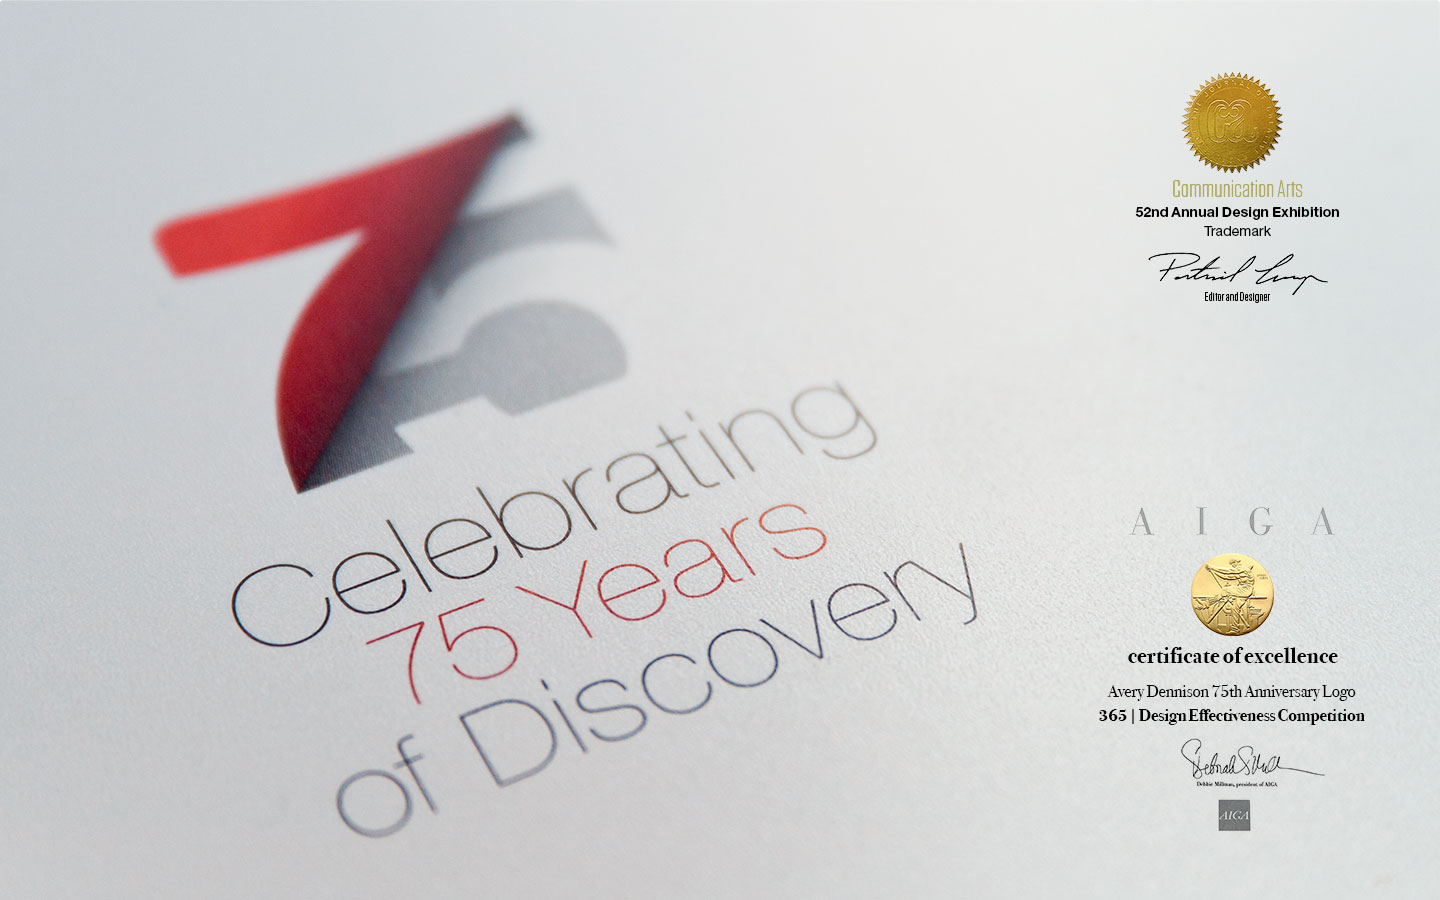 printed version of Avery Dennison's 75th anniversary logo